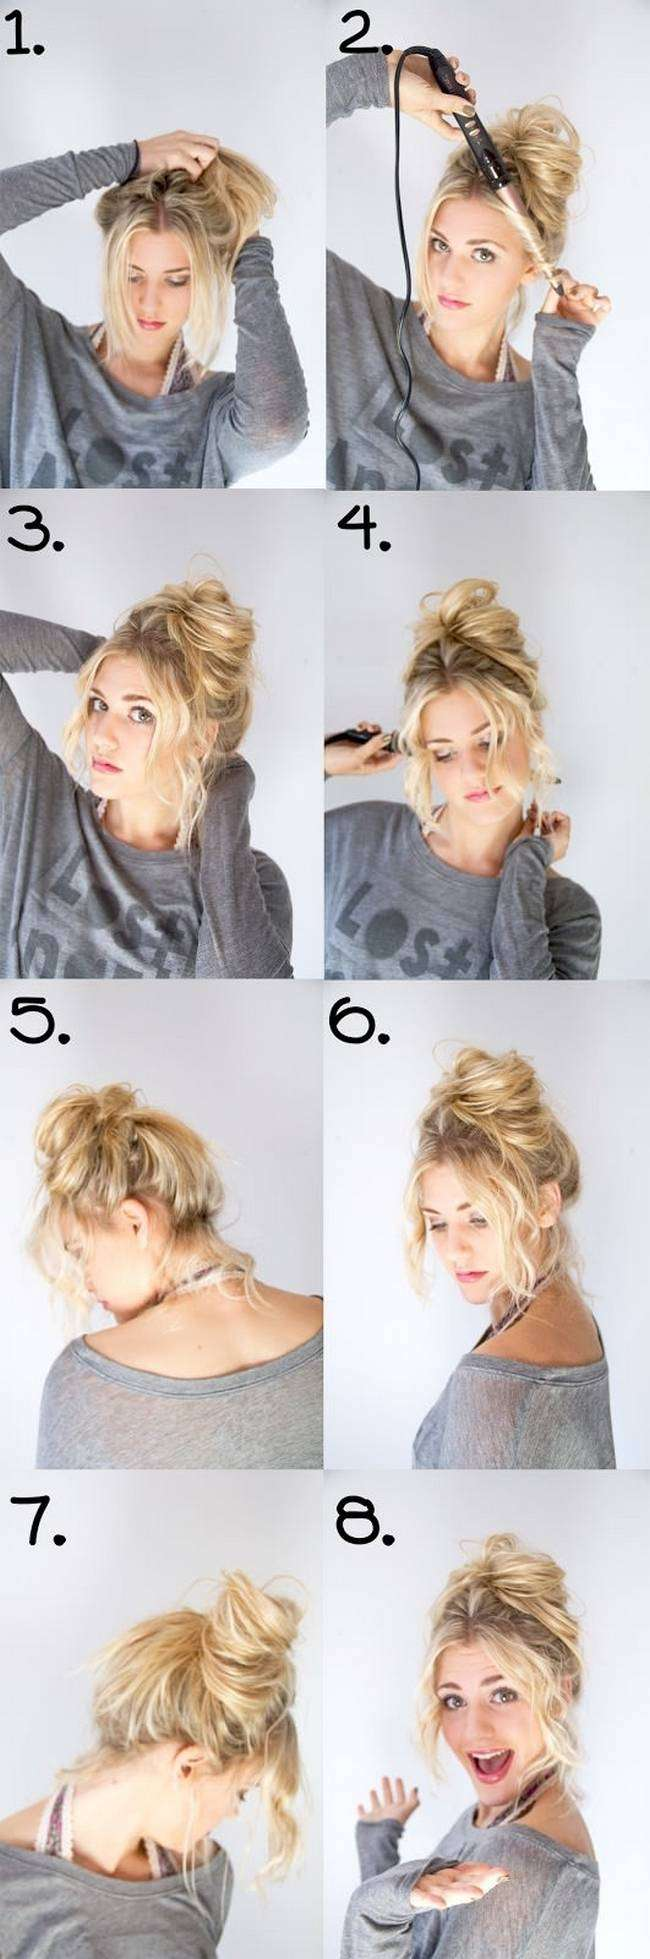 21 Easy Messy Bun Tutorials For The Perfect Disheveled Look - Gurl ...